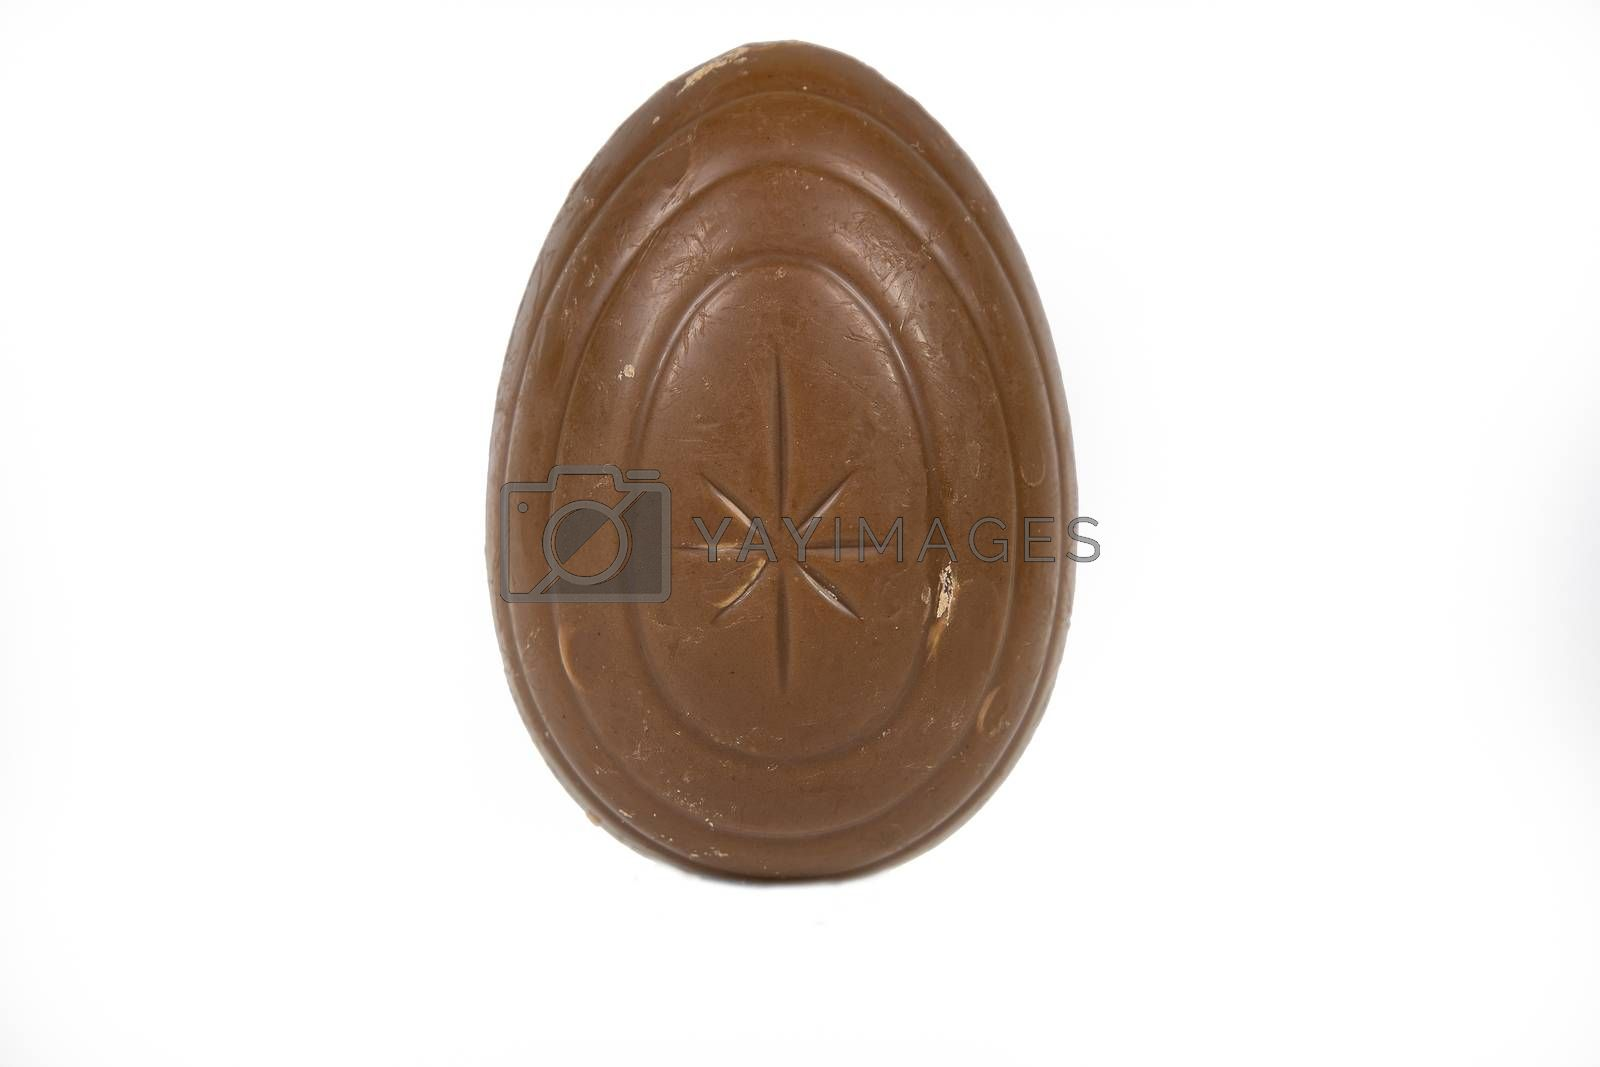 Chocolate Easter egg on a white background